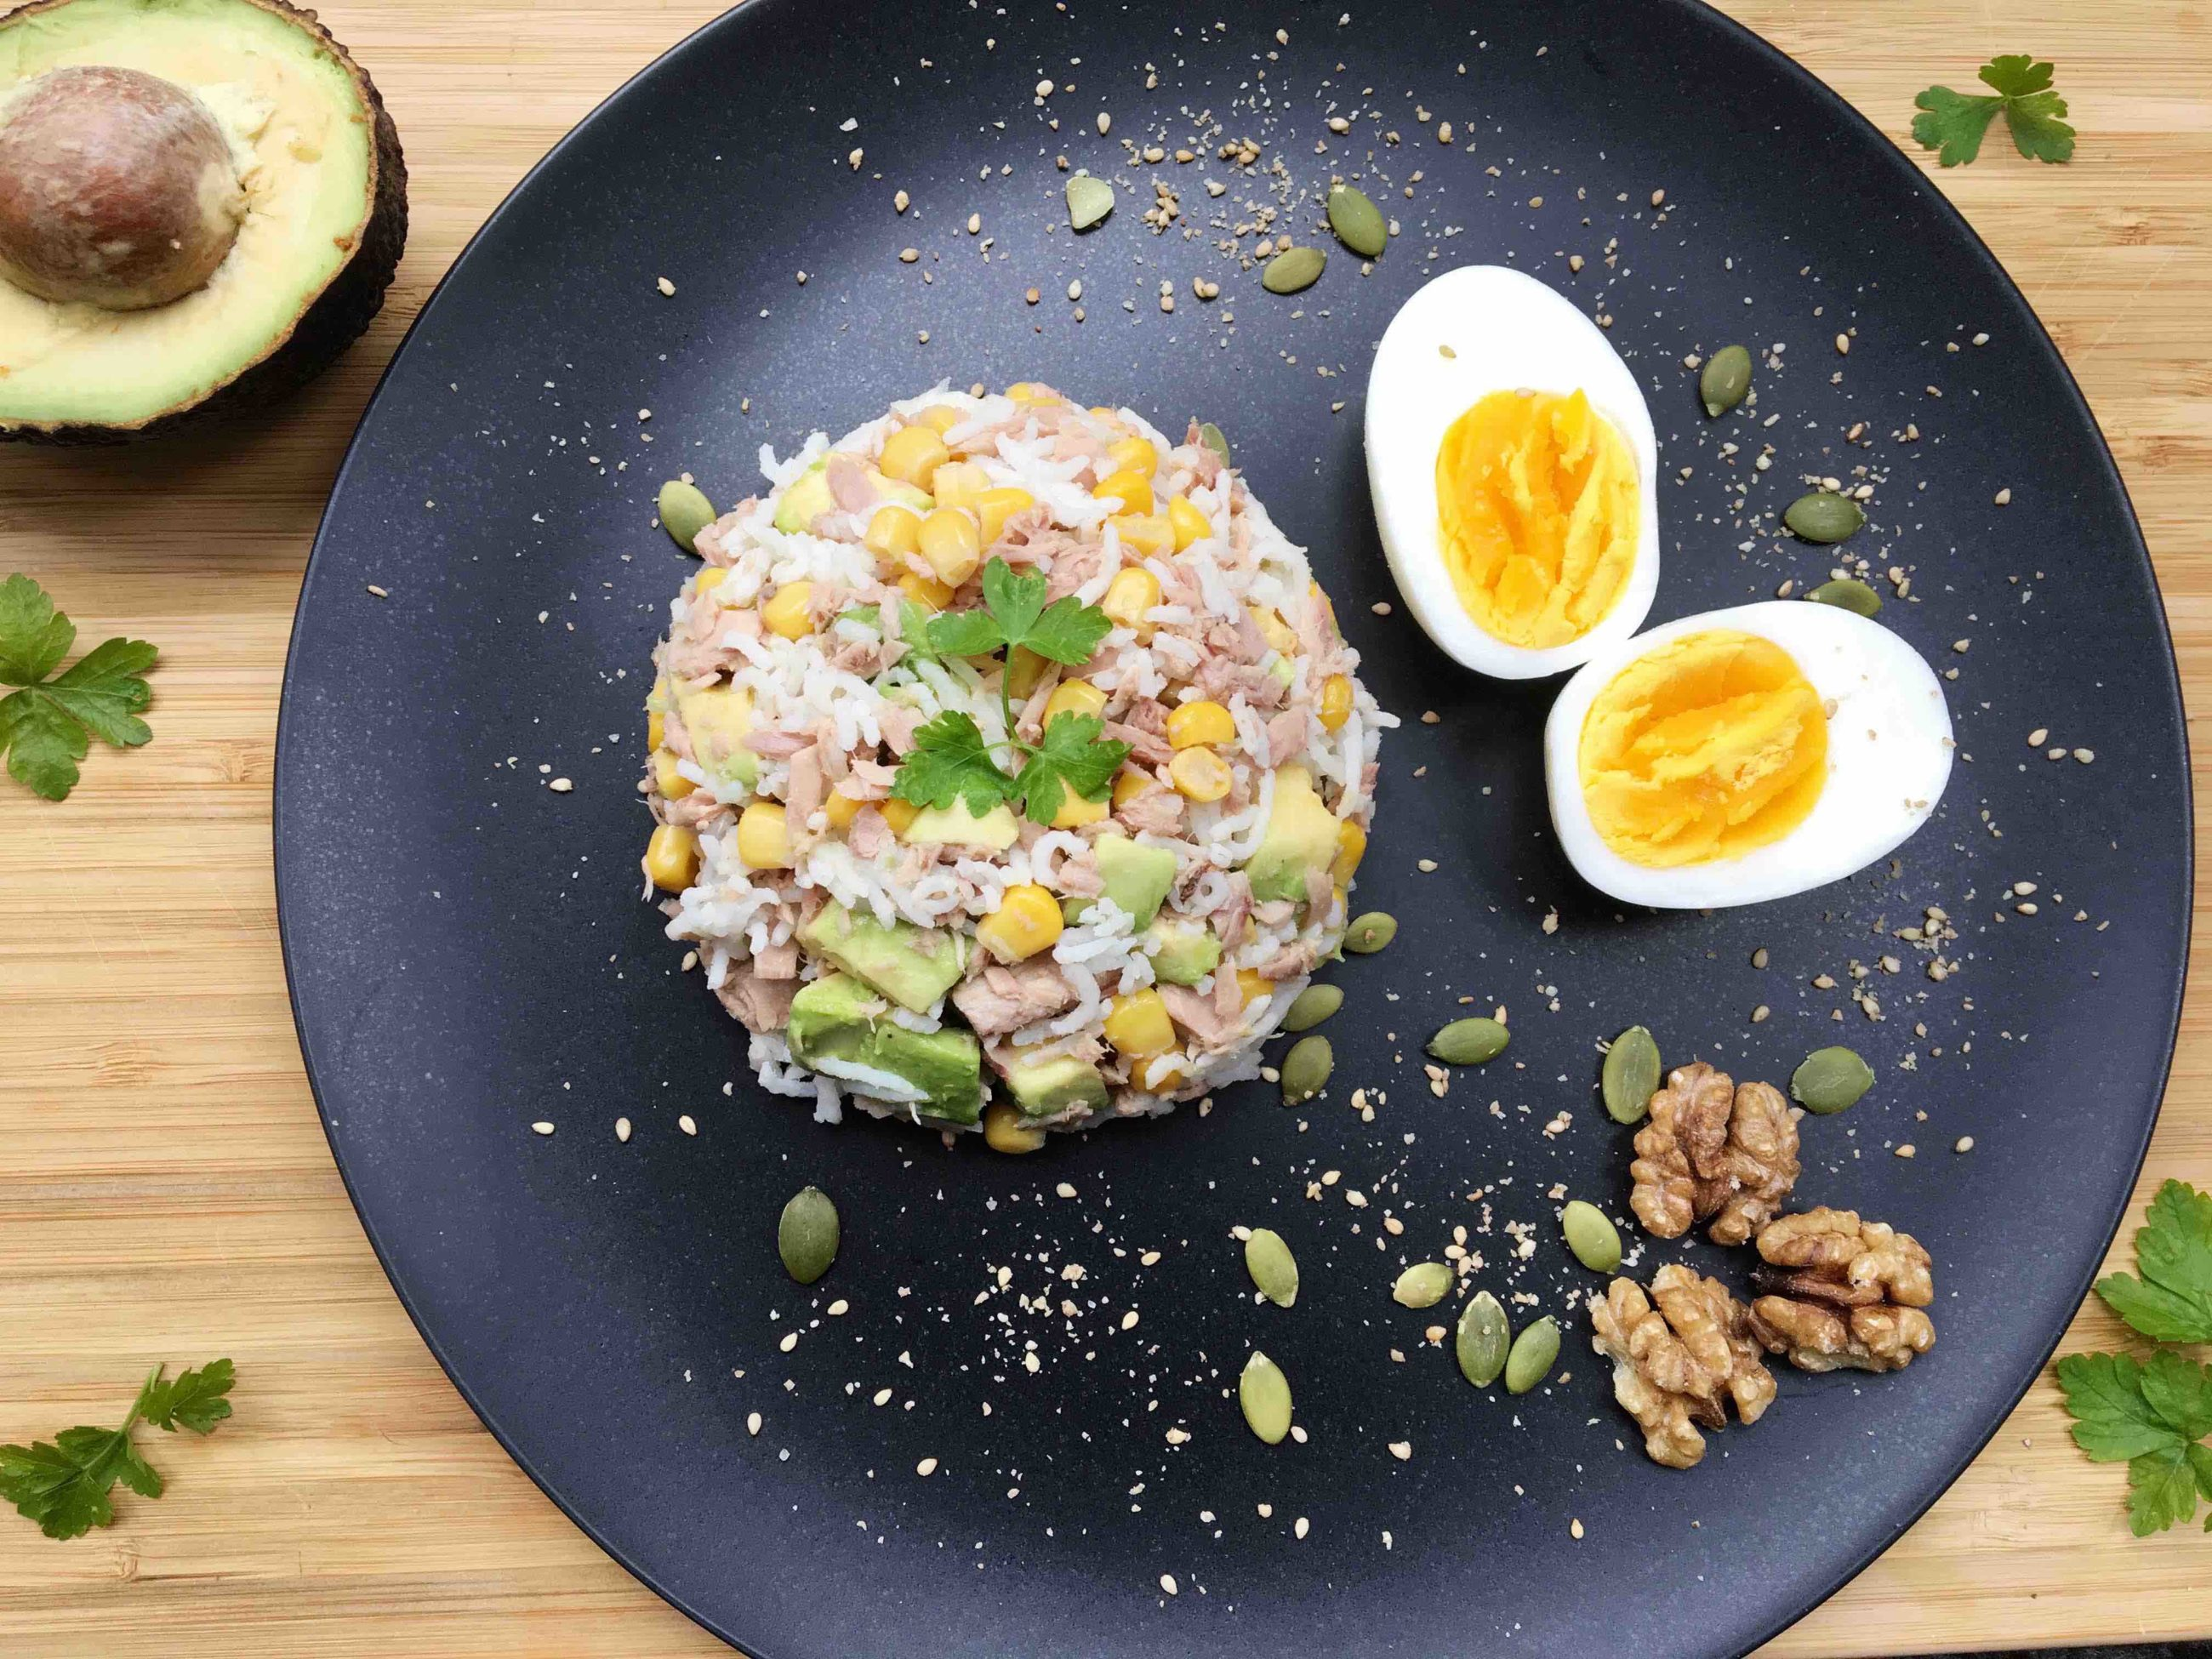 Rice, Tuna, Avocado & Egg Salad